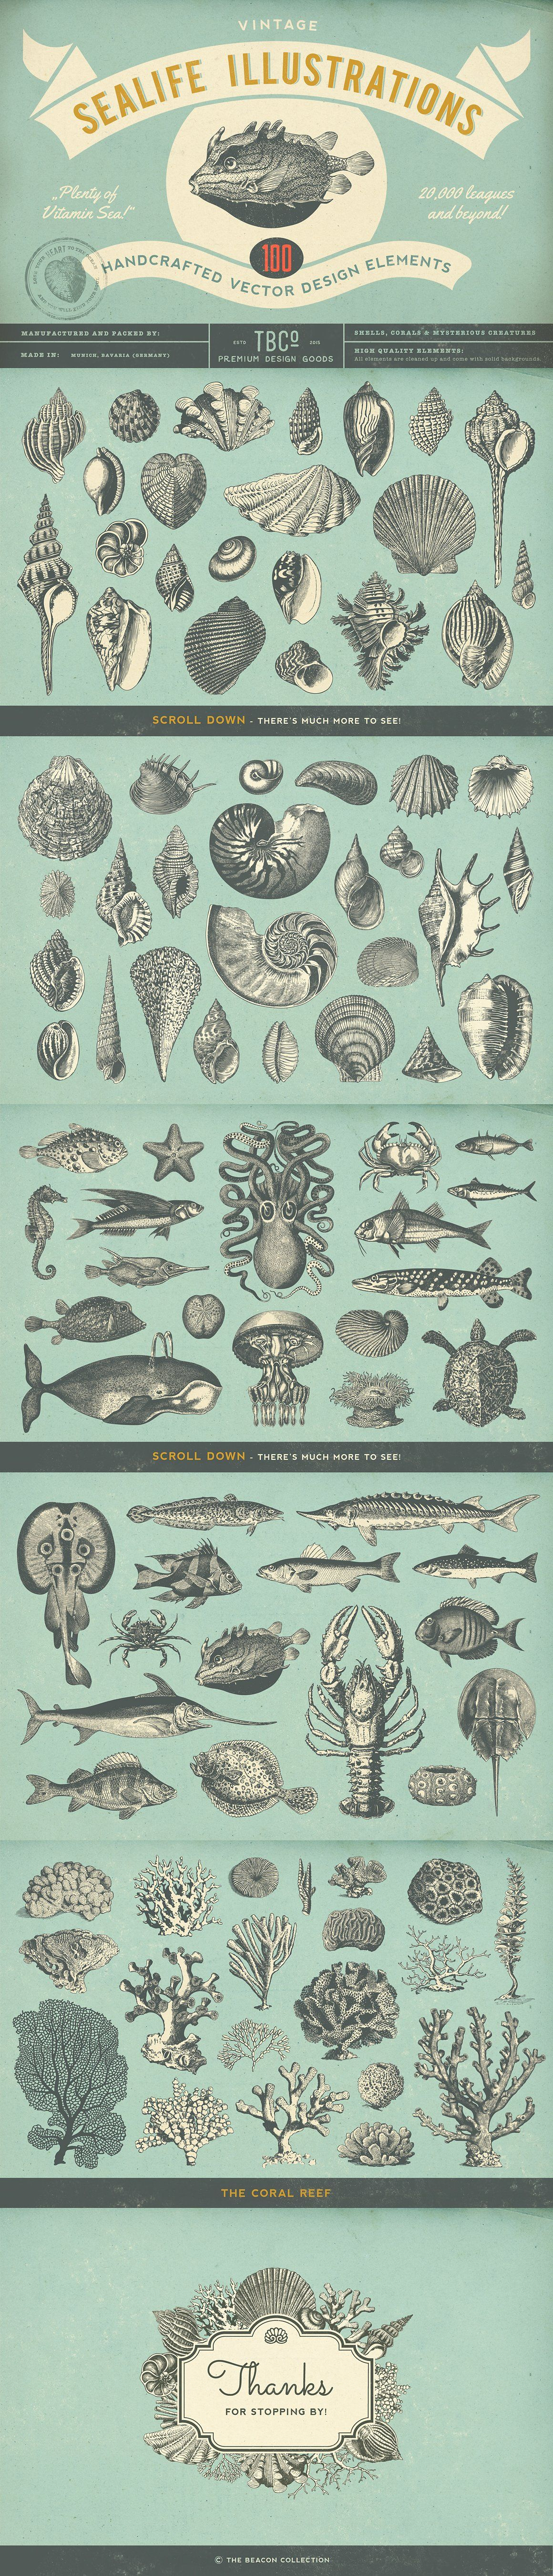 100 Vintage Sealife Illustrations by The Beacon Collection on @creativemarket